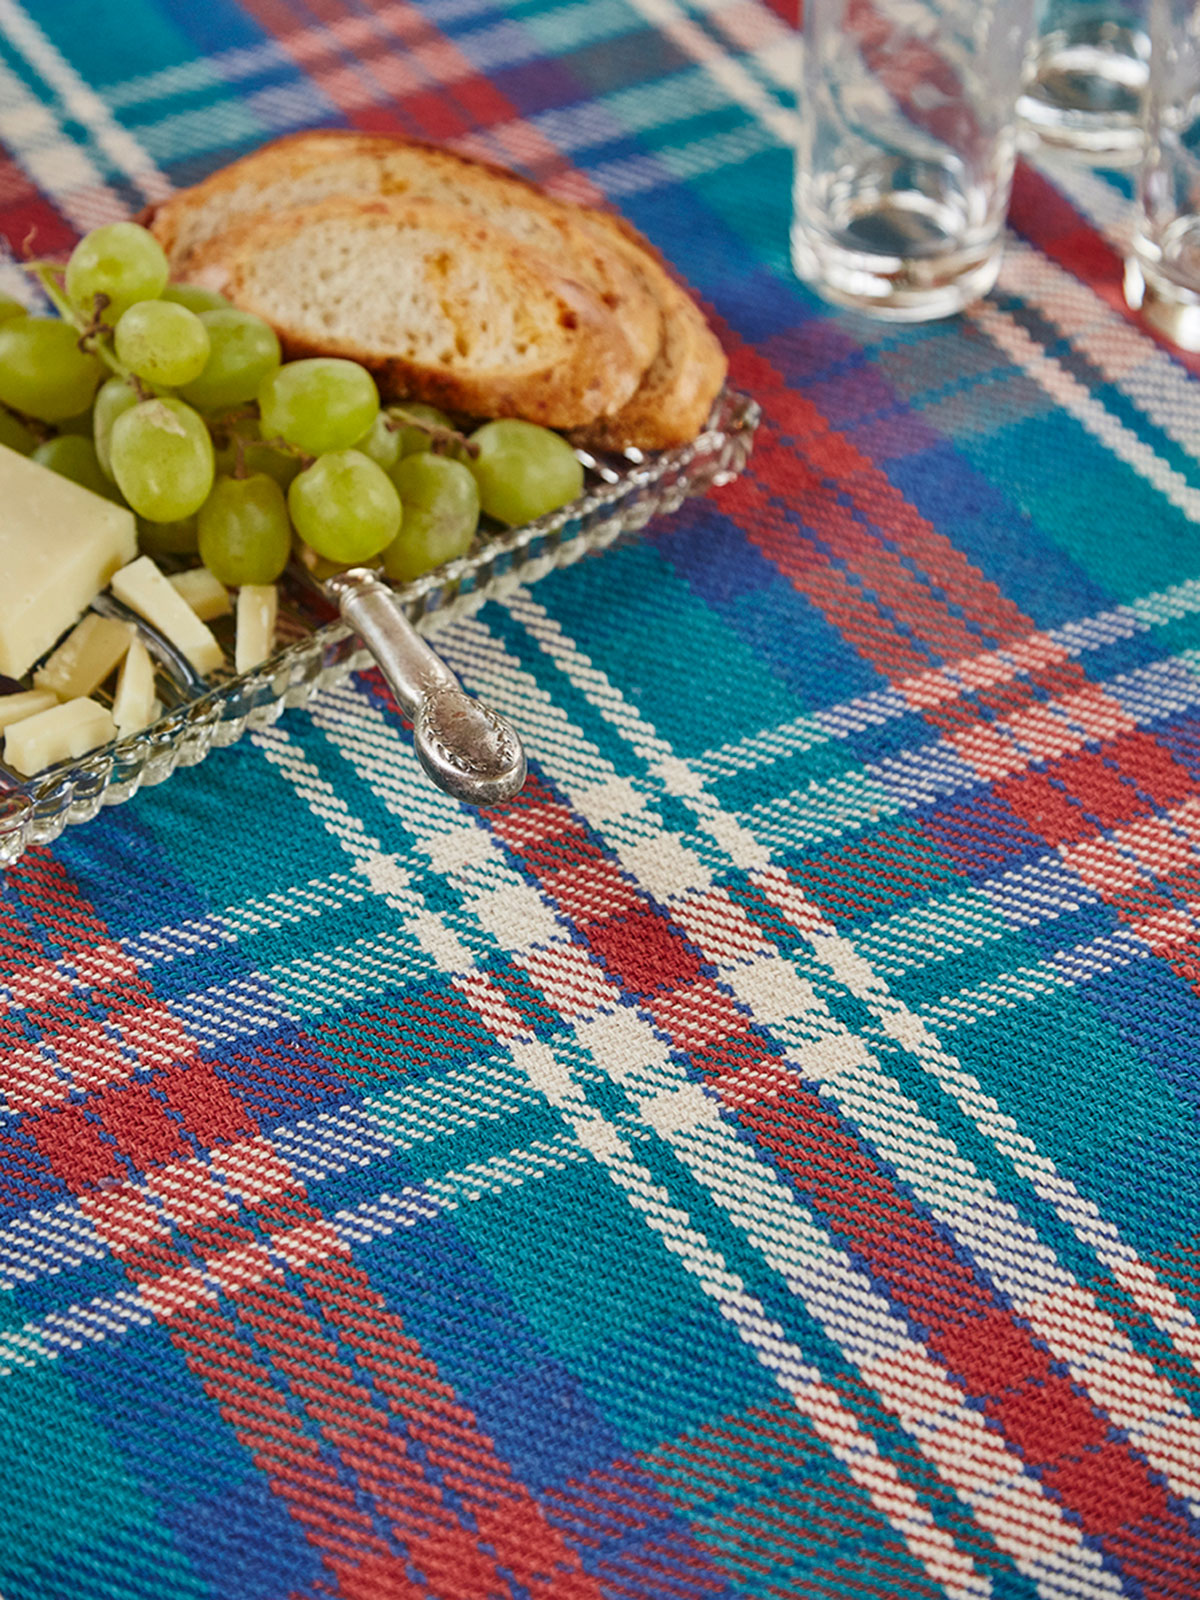 Afternoon Plaid Tablecloth